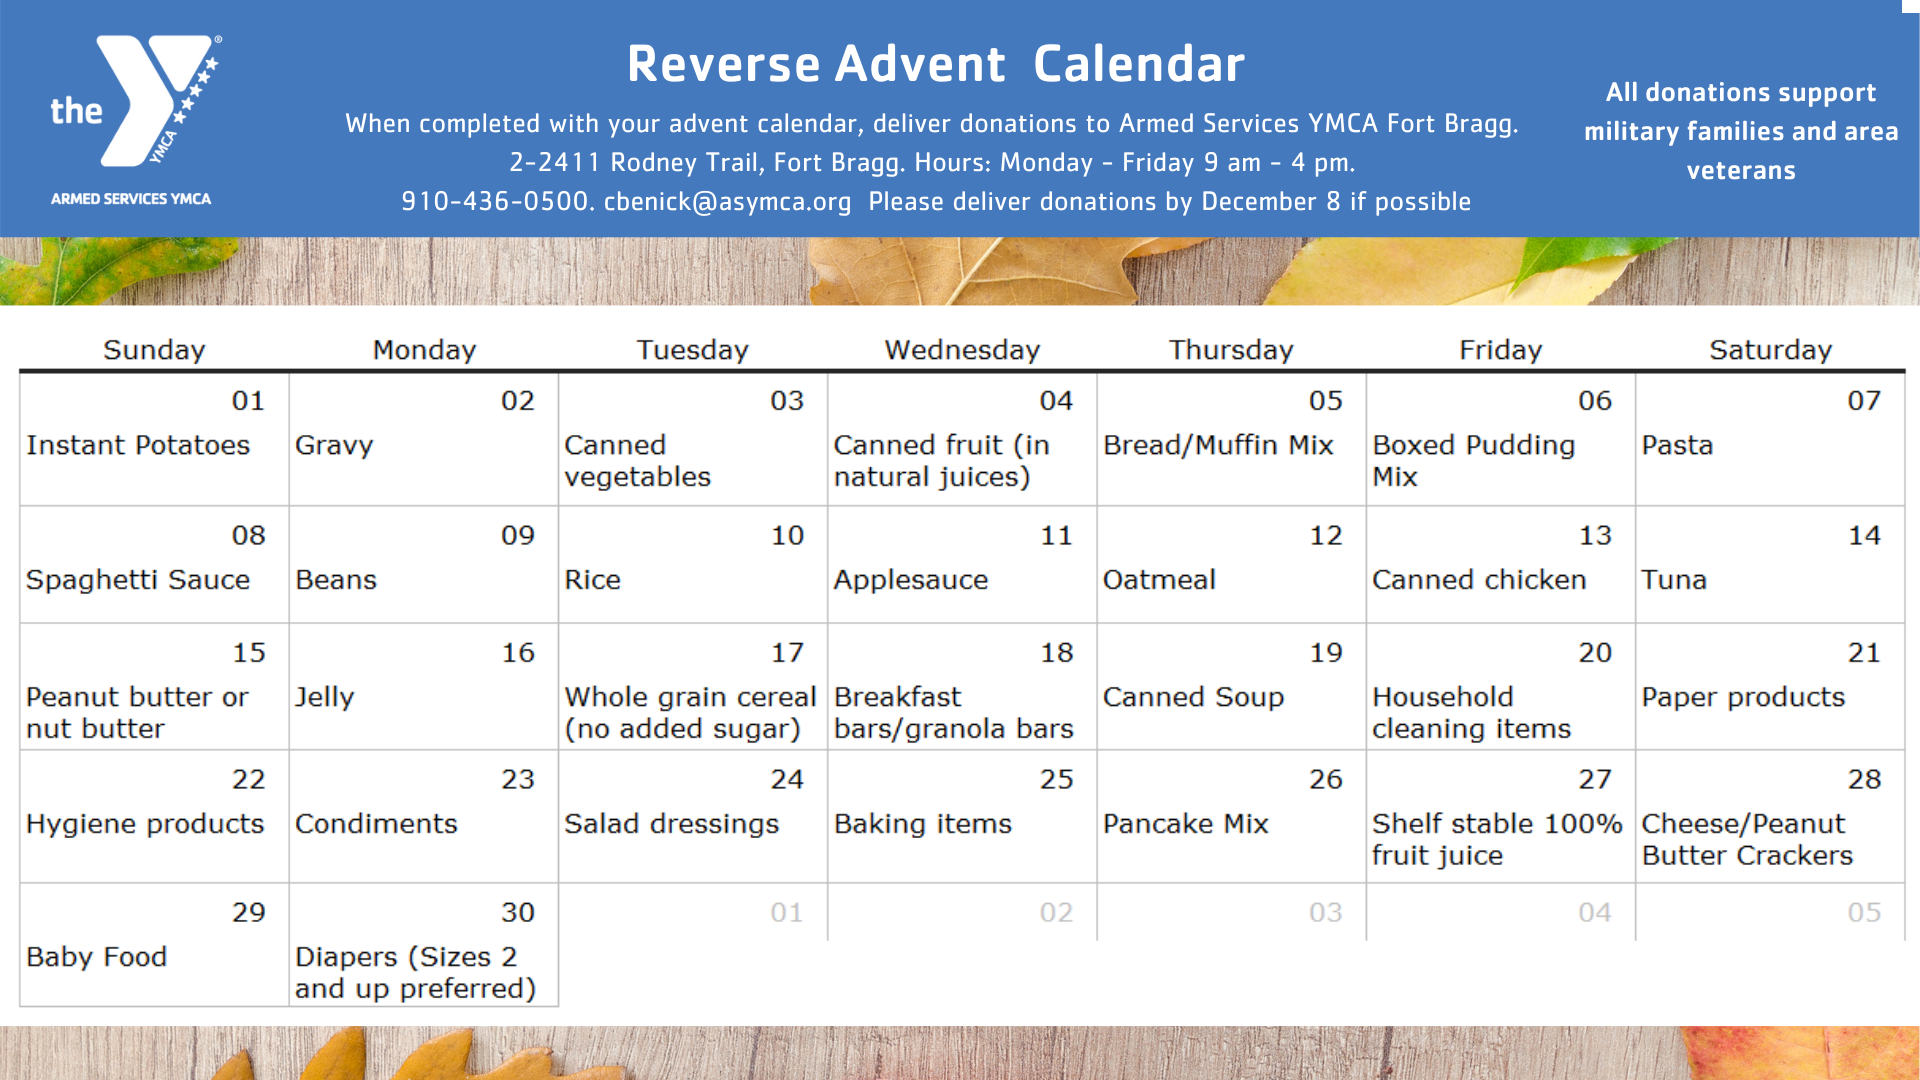 Fort Bragg YMCA Food Pantry Support (Reverse Advent Calendar)